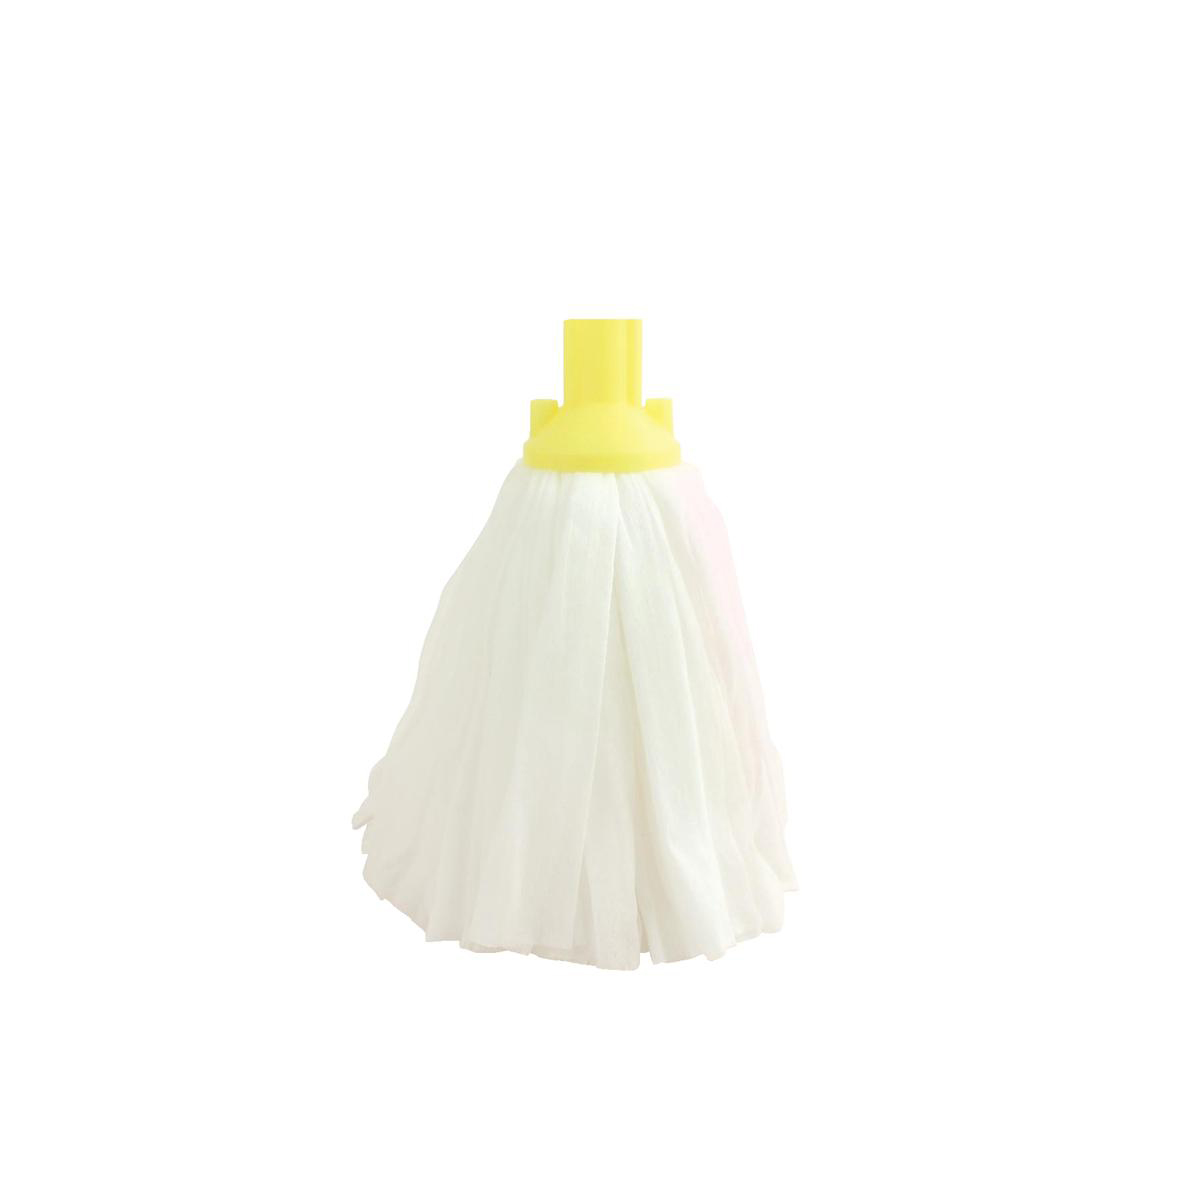 Bentley Disposable Socket Mop Head 120g Yellow Ref SPC/DSM120/Y